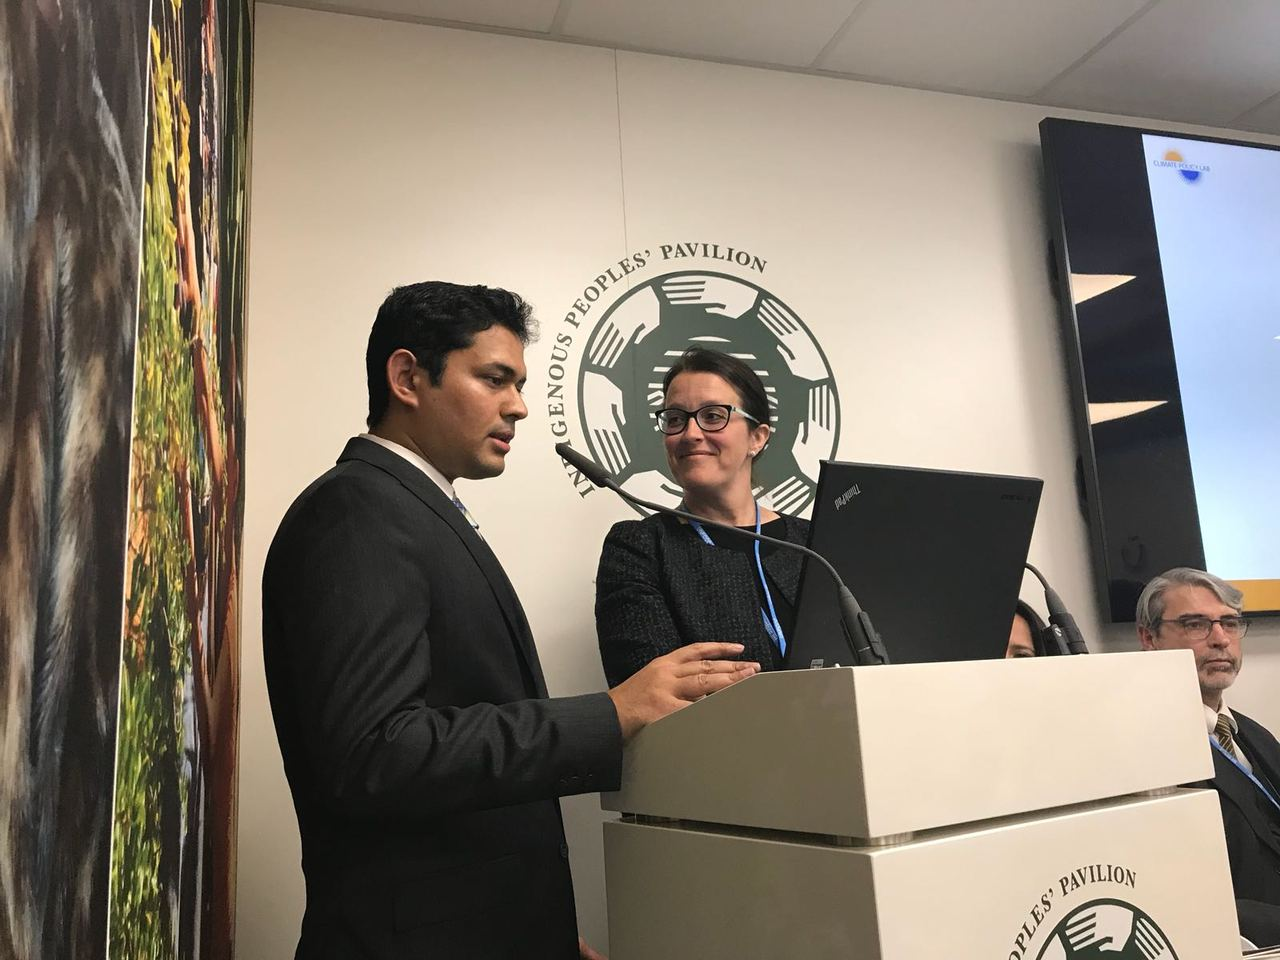 Together with Fletcher doctoral student Easwar Narassimhan and MALD student Stefan Koester, I released our new report on   Carbon Pricing in Practice: A Review of the Evidence   at an official COP23 side event entitled  The Role of Carbon Pricing Mechanisms in Achieving NDC: A View of Multistakeholders.